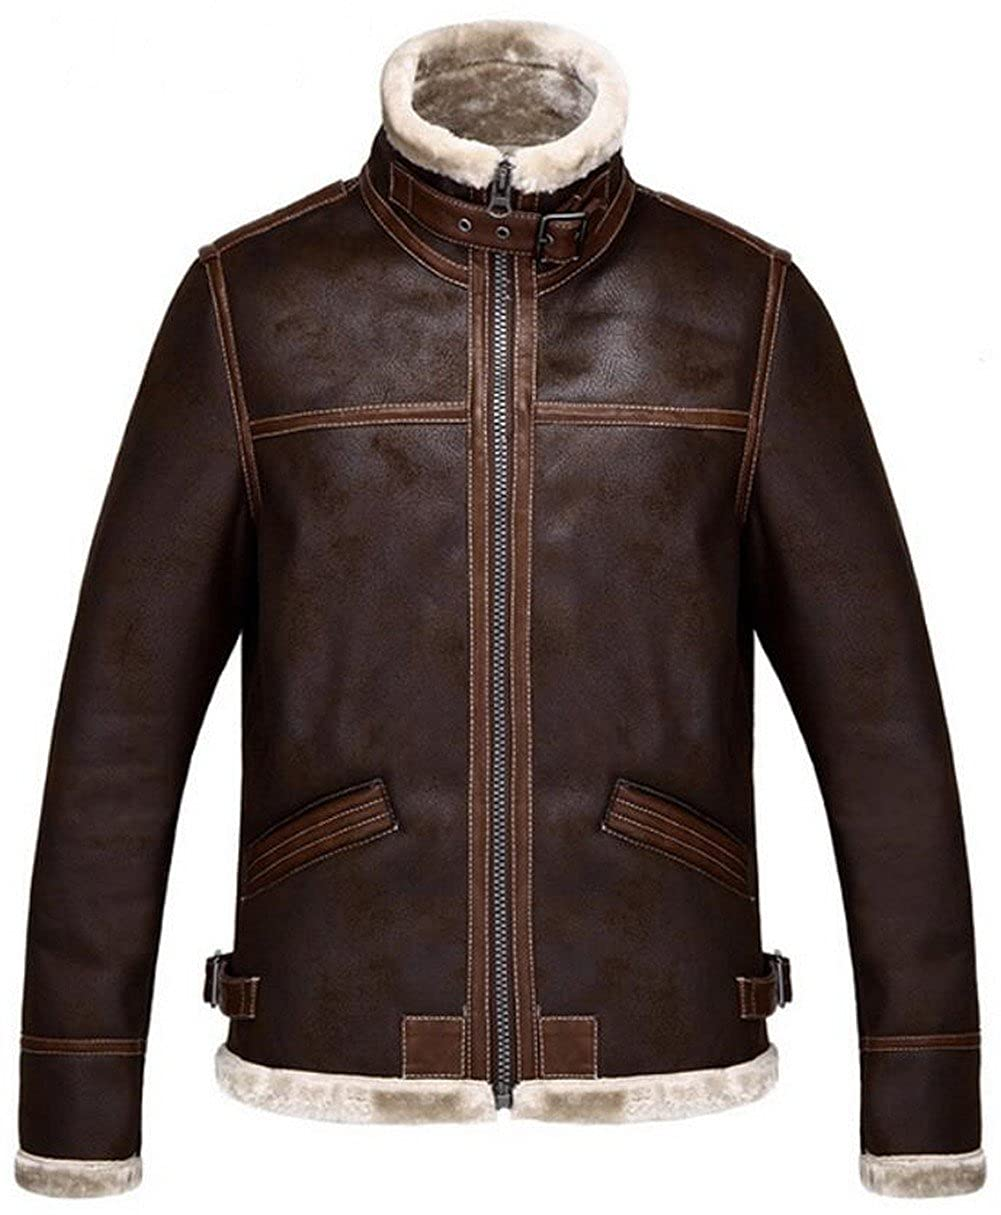 4262de3f5bfe Resident Evil 4 JIAX Men s Winter Thicken Faux Leather Jacket Warmer Coat